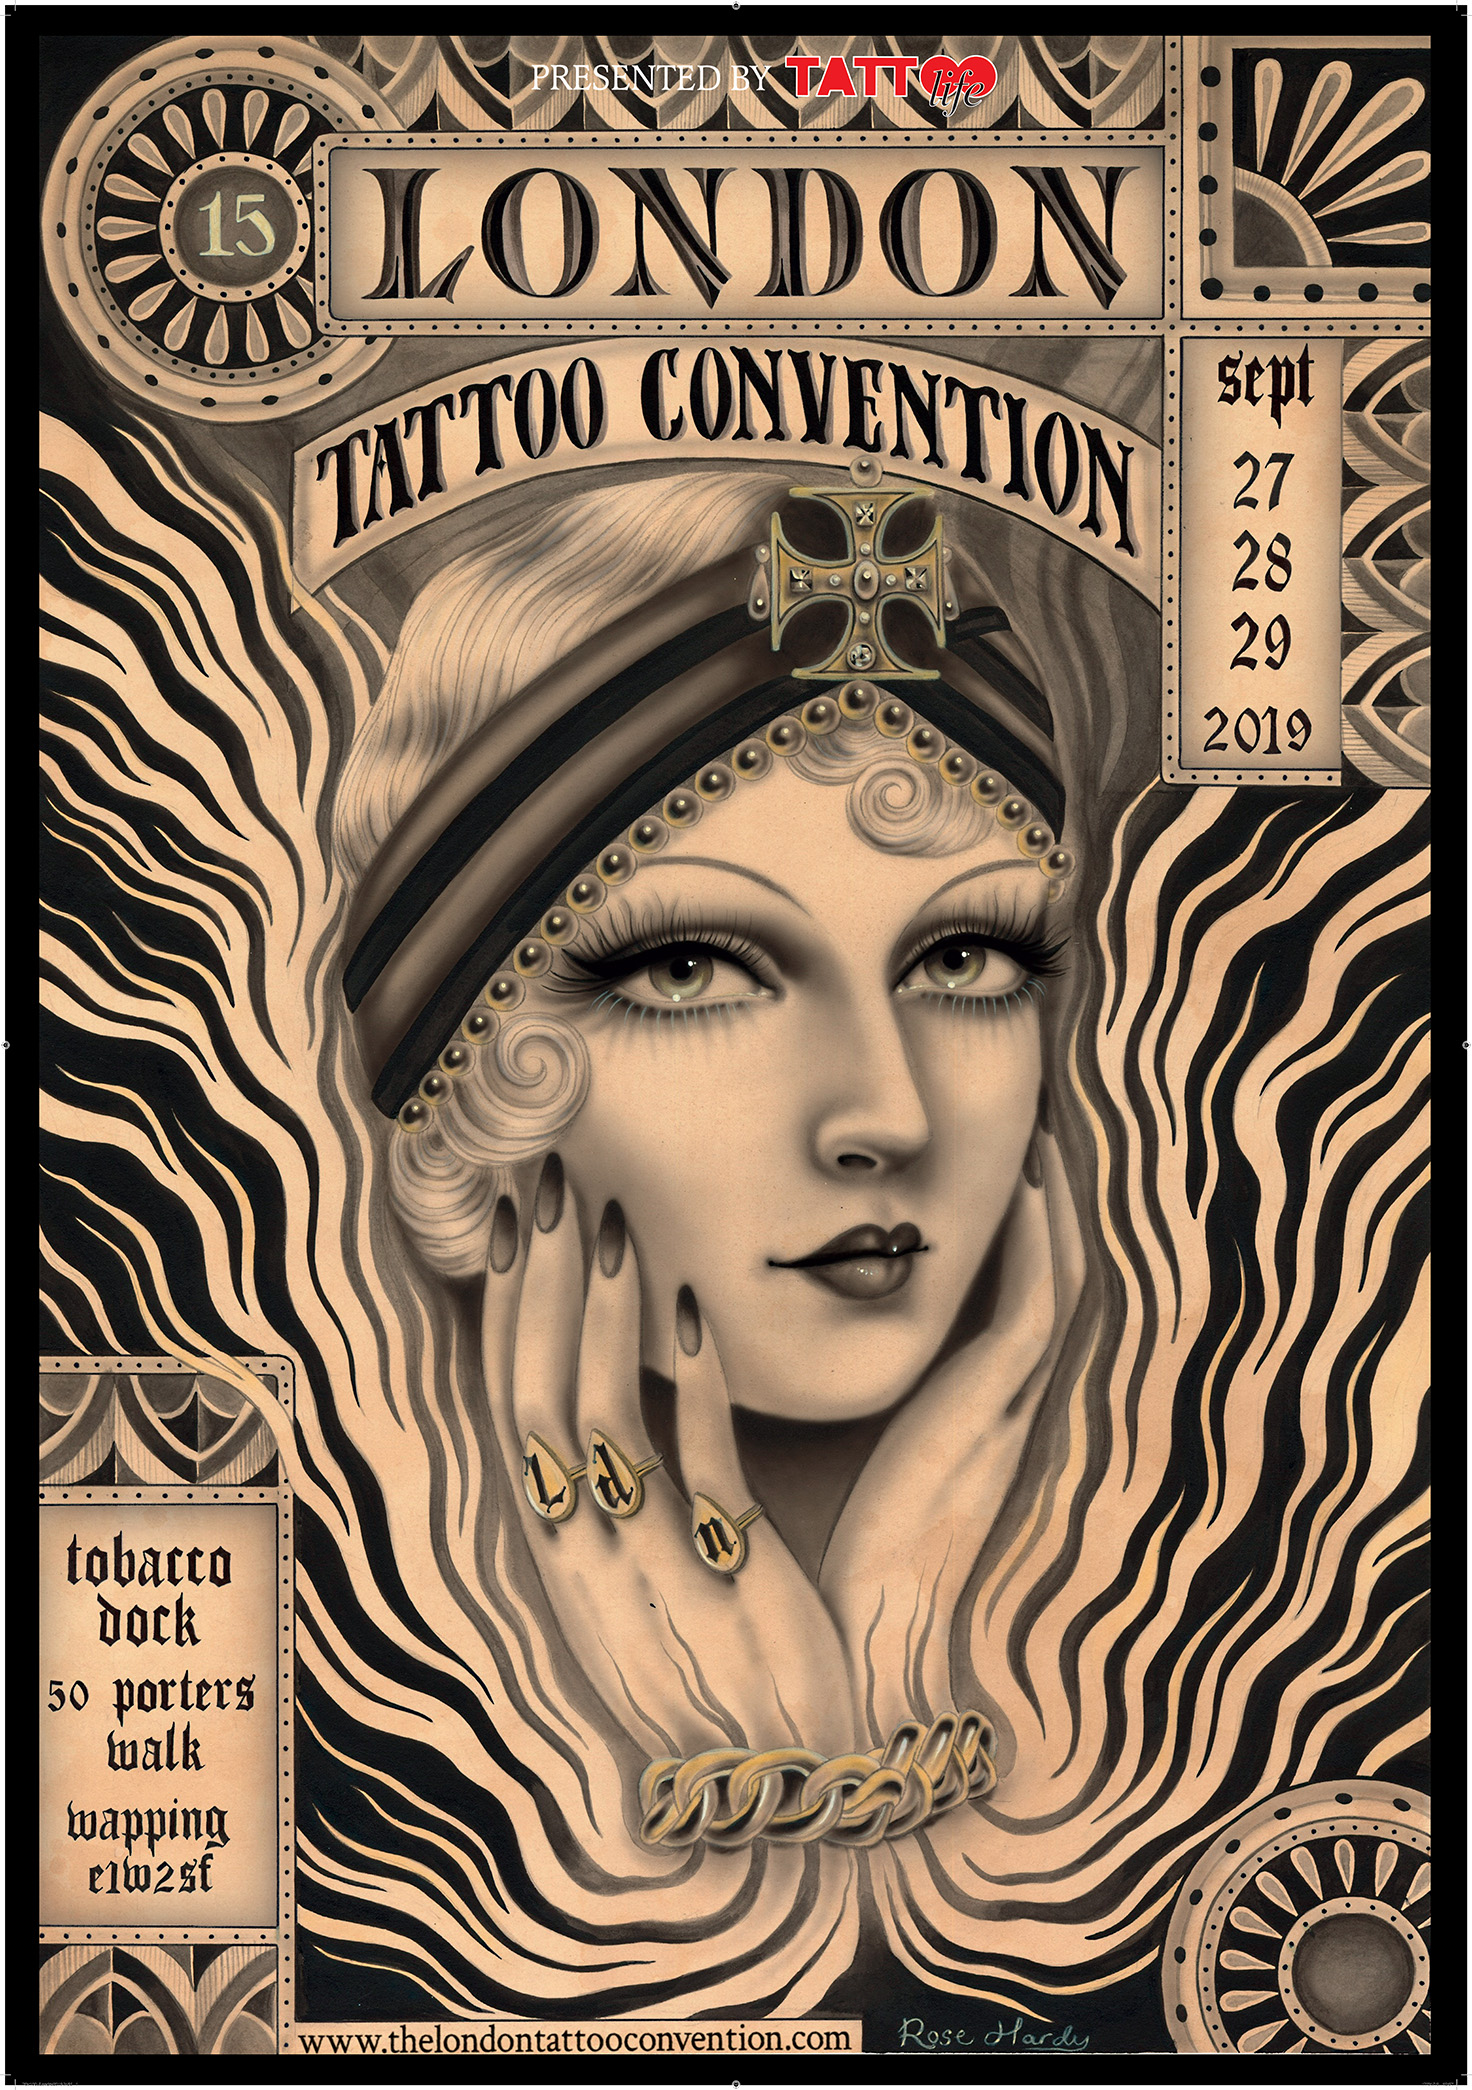 The London Tattoo Convention 2019 poster designed by Rose Hardy